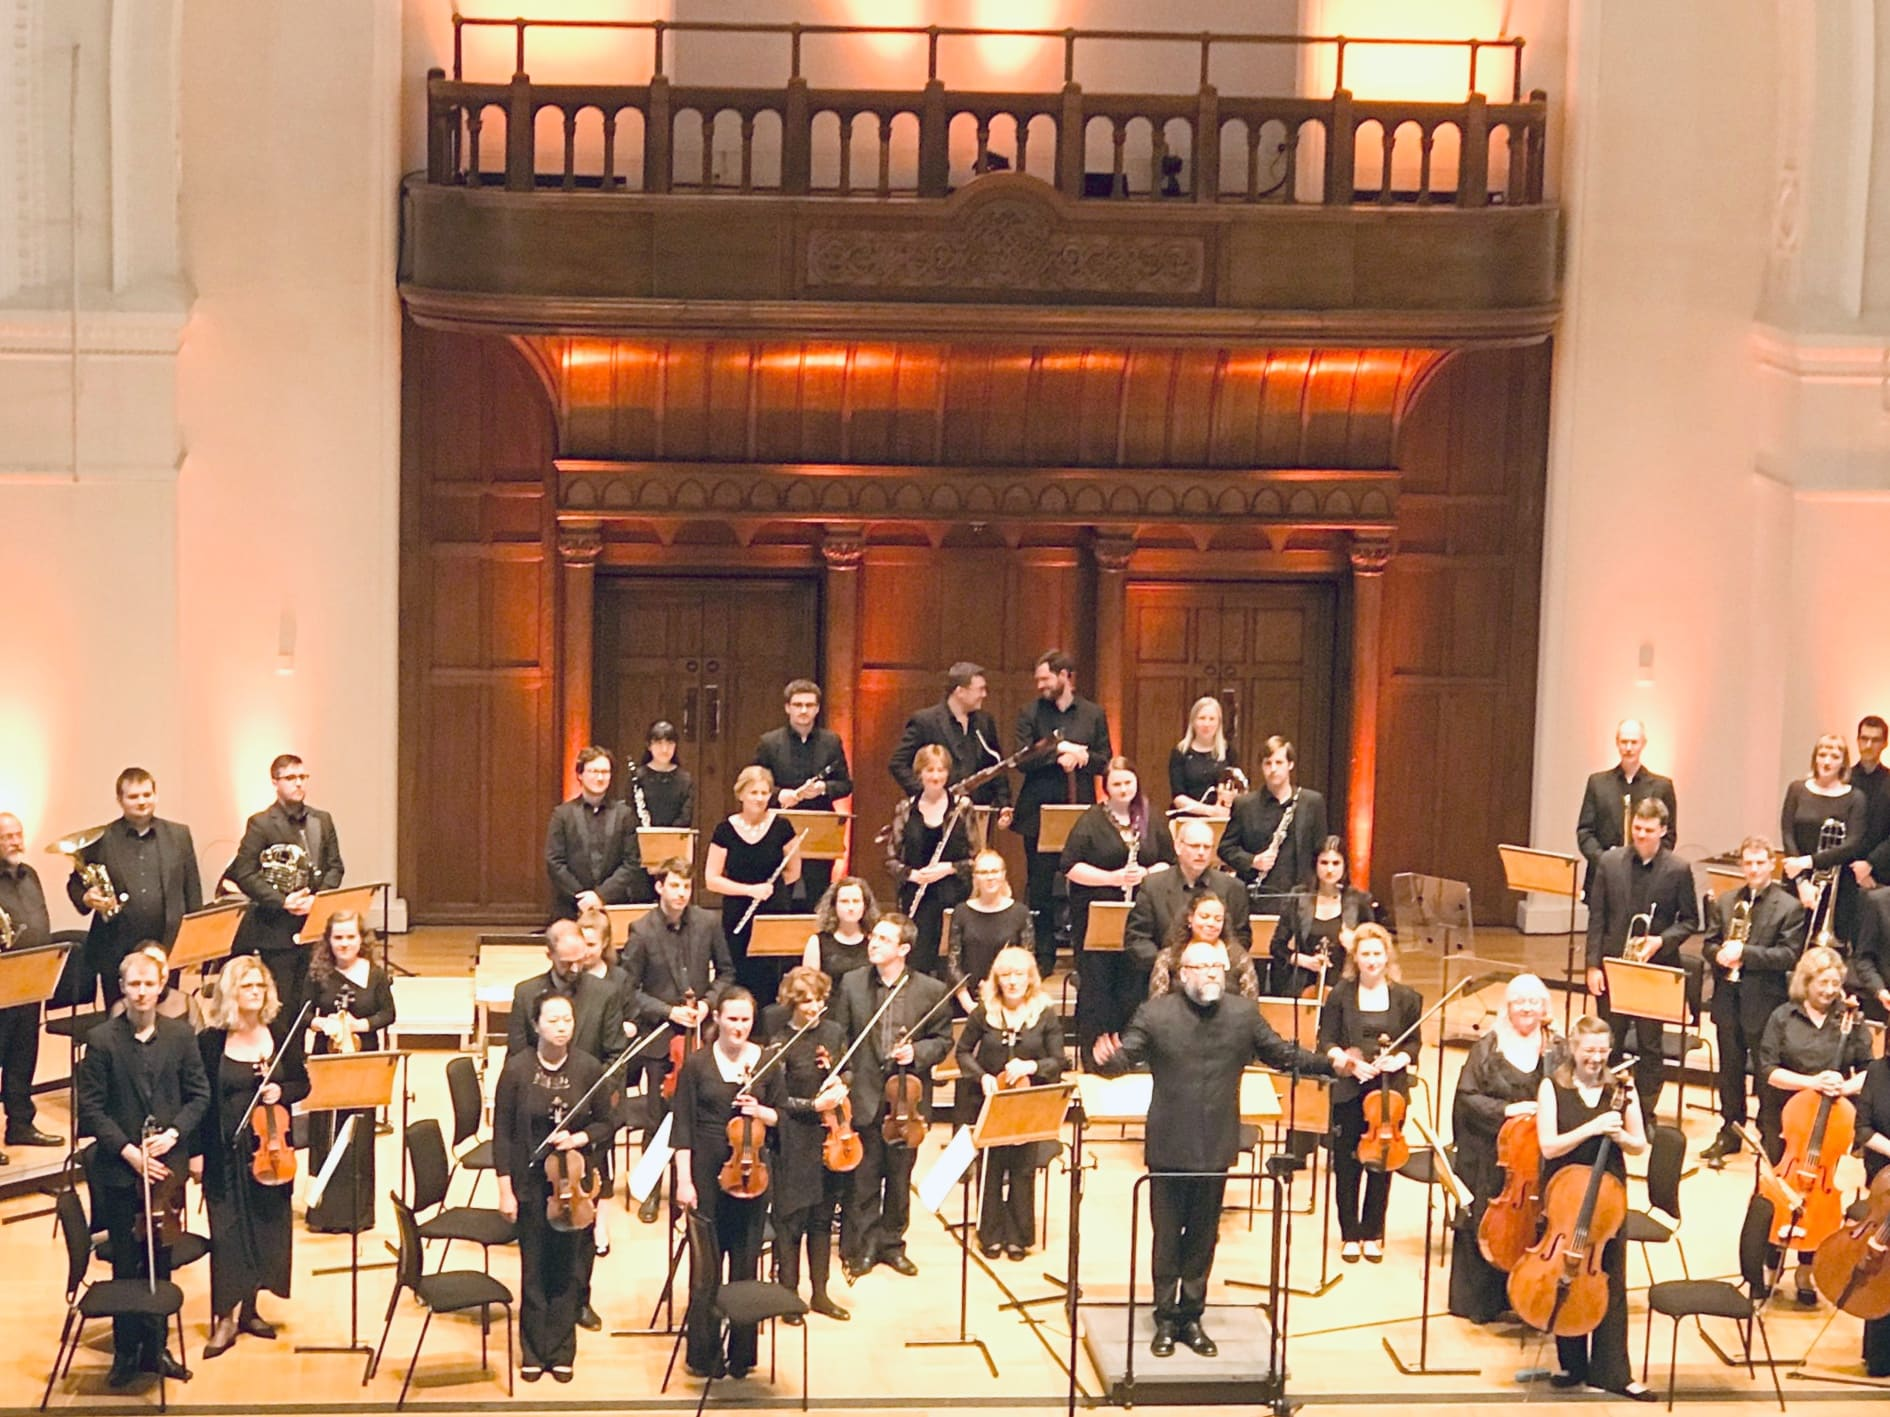 Concert Review – Musical Opinion on ESO at Cadogan Hall